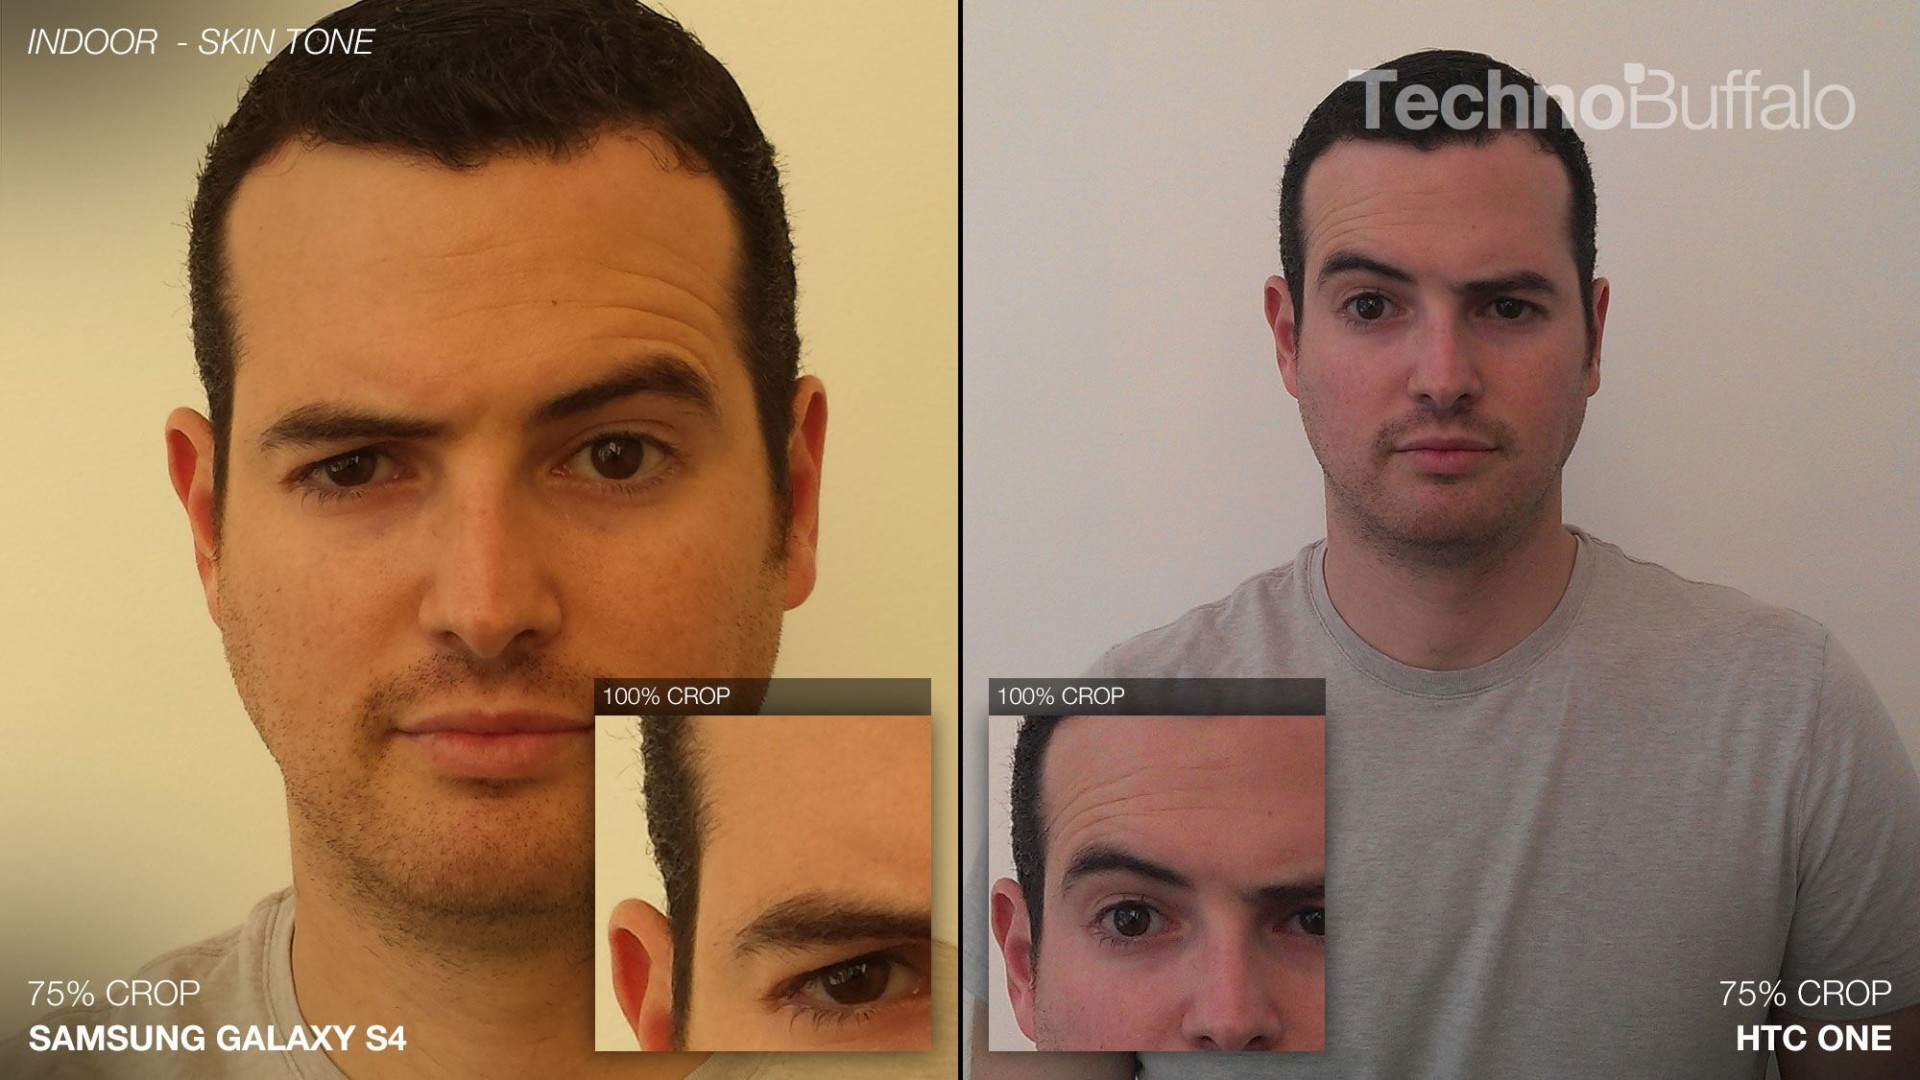 Samsung-Galaxy-S4-vs-HTC-One-Camera-Comparison-Indoor-Skin-Tone